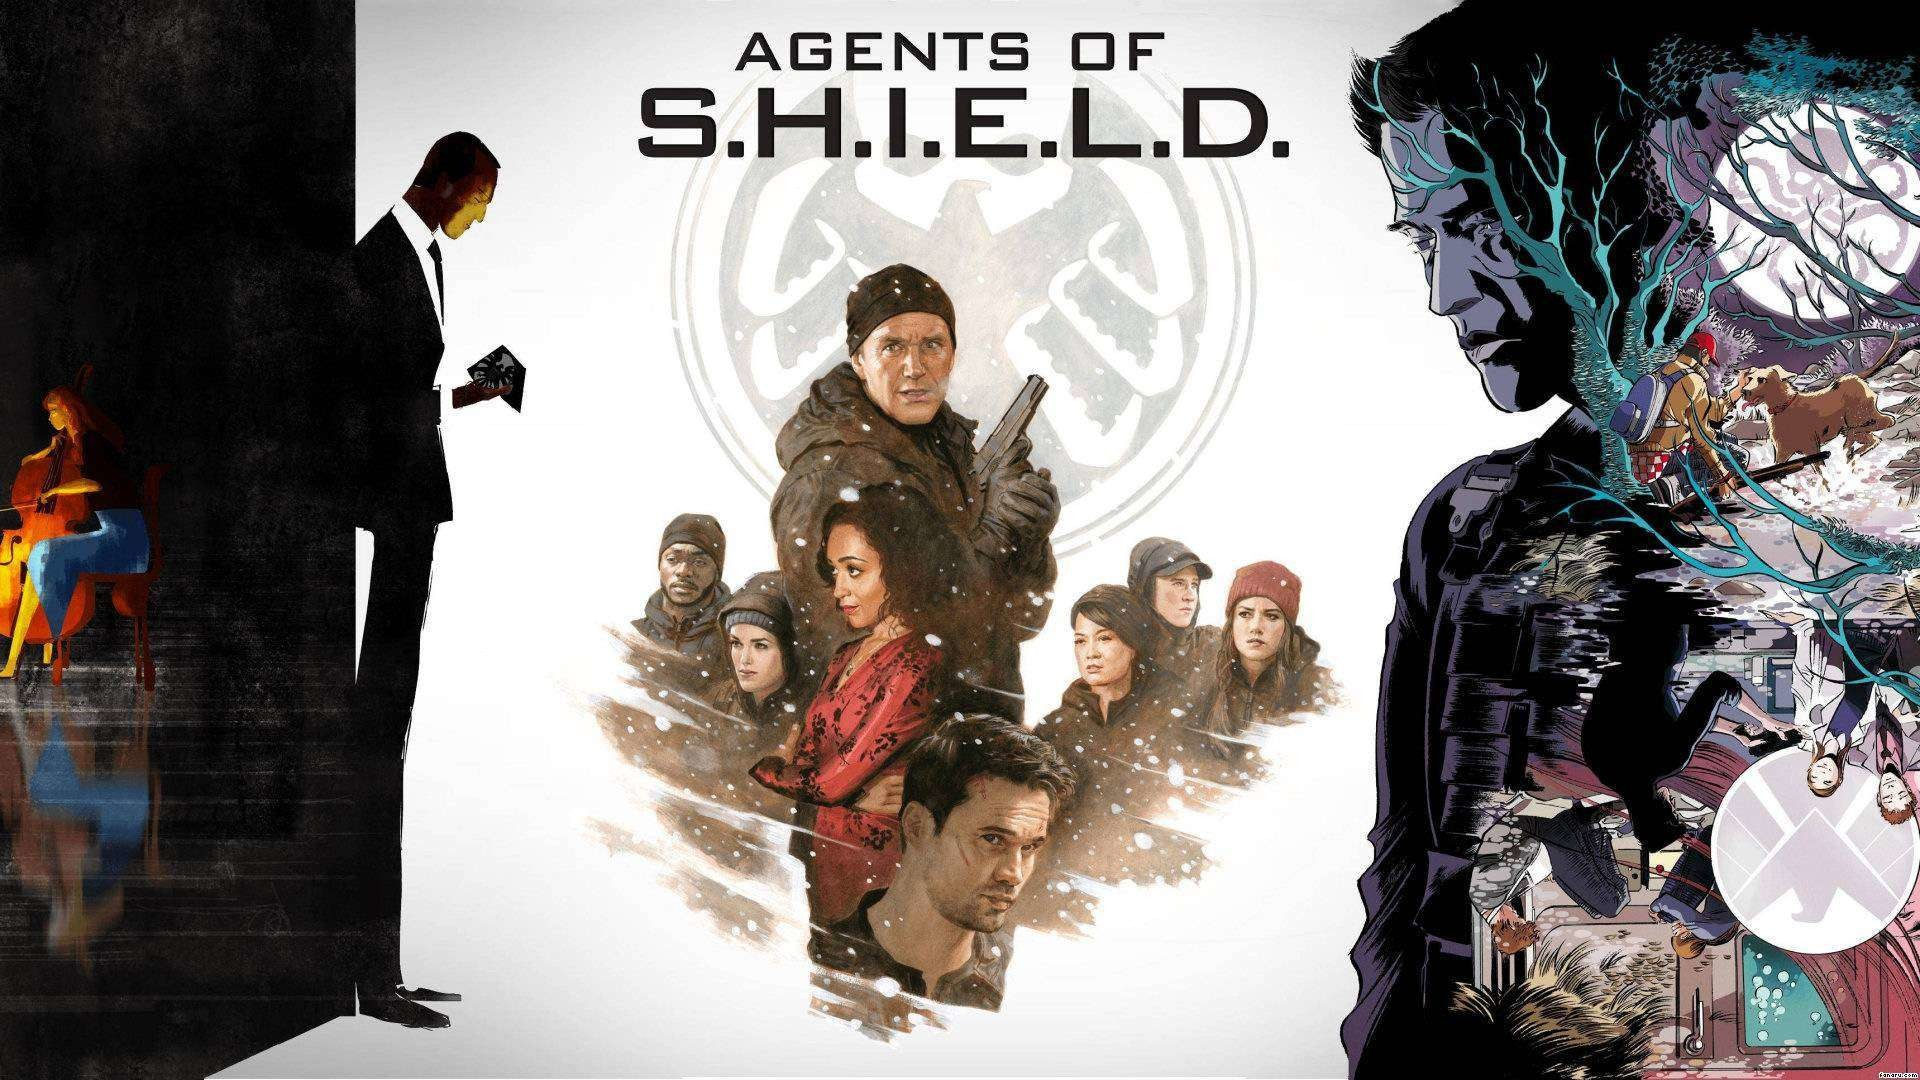 1920x1080 Agents Of Shield WallPaper